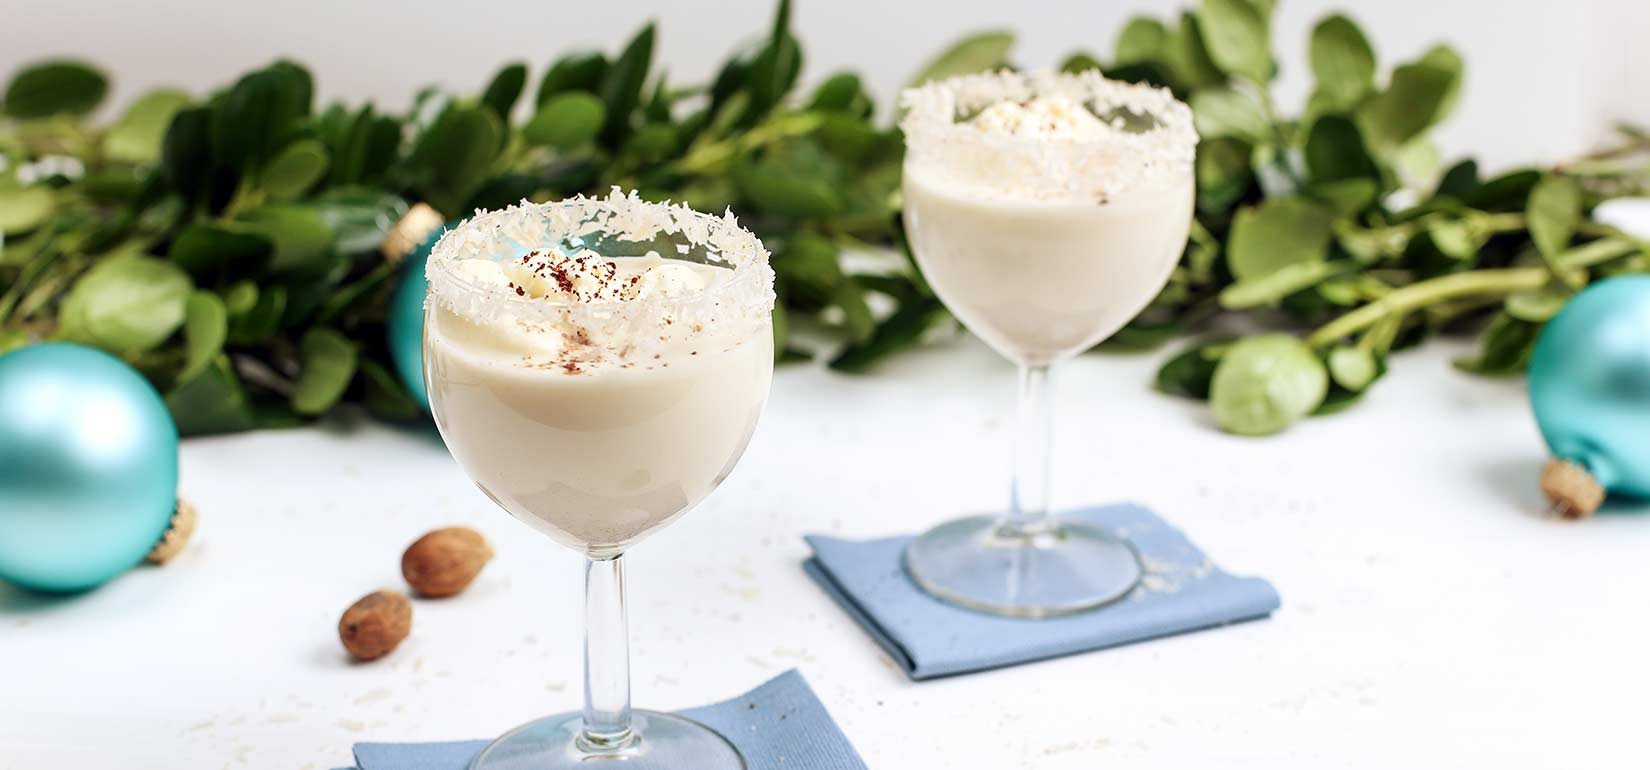 Simply Organic Holiday Organic Spiced Rum Coquito Recipe